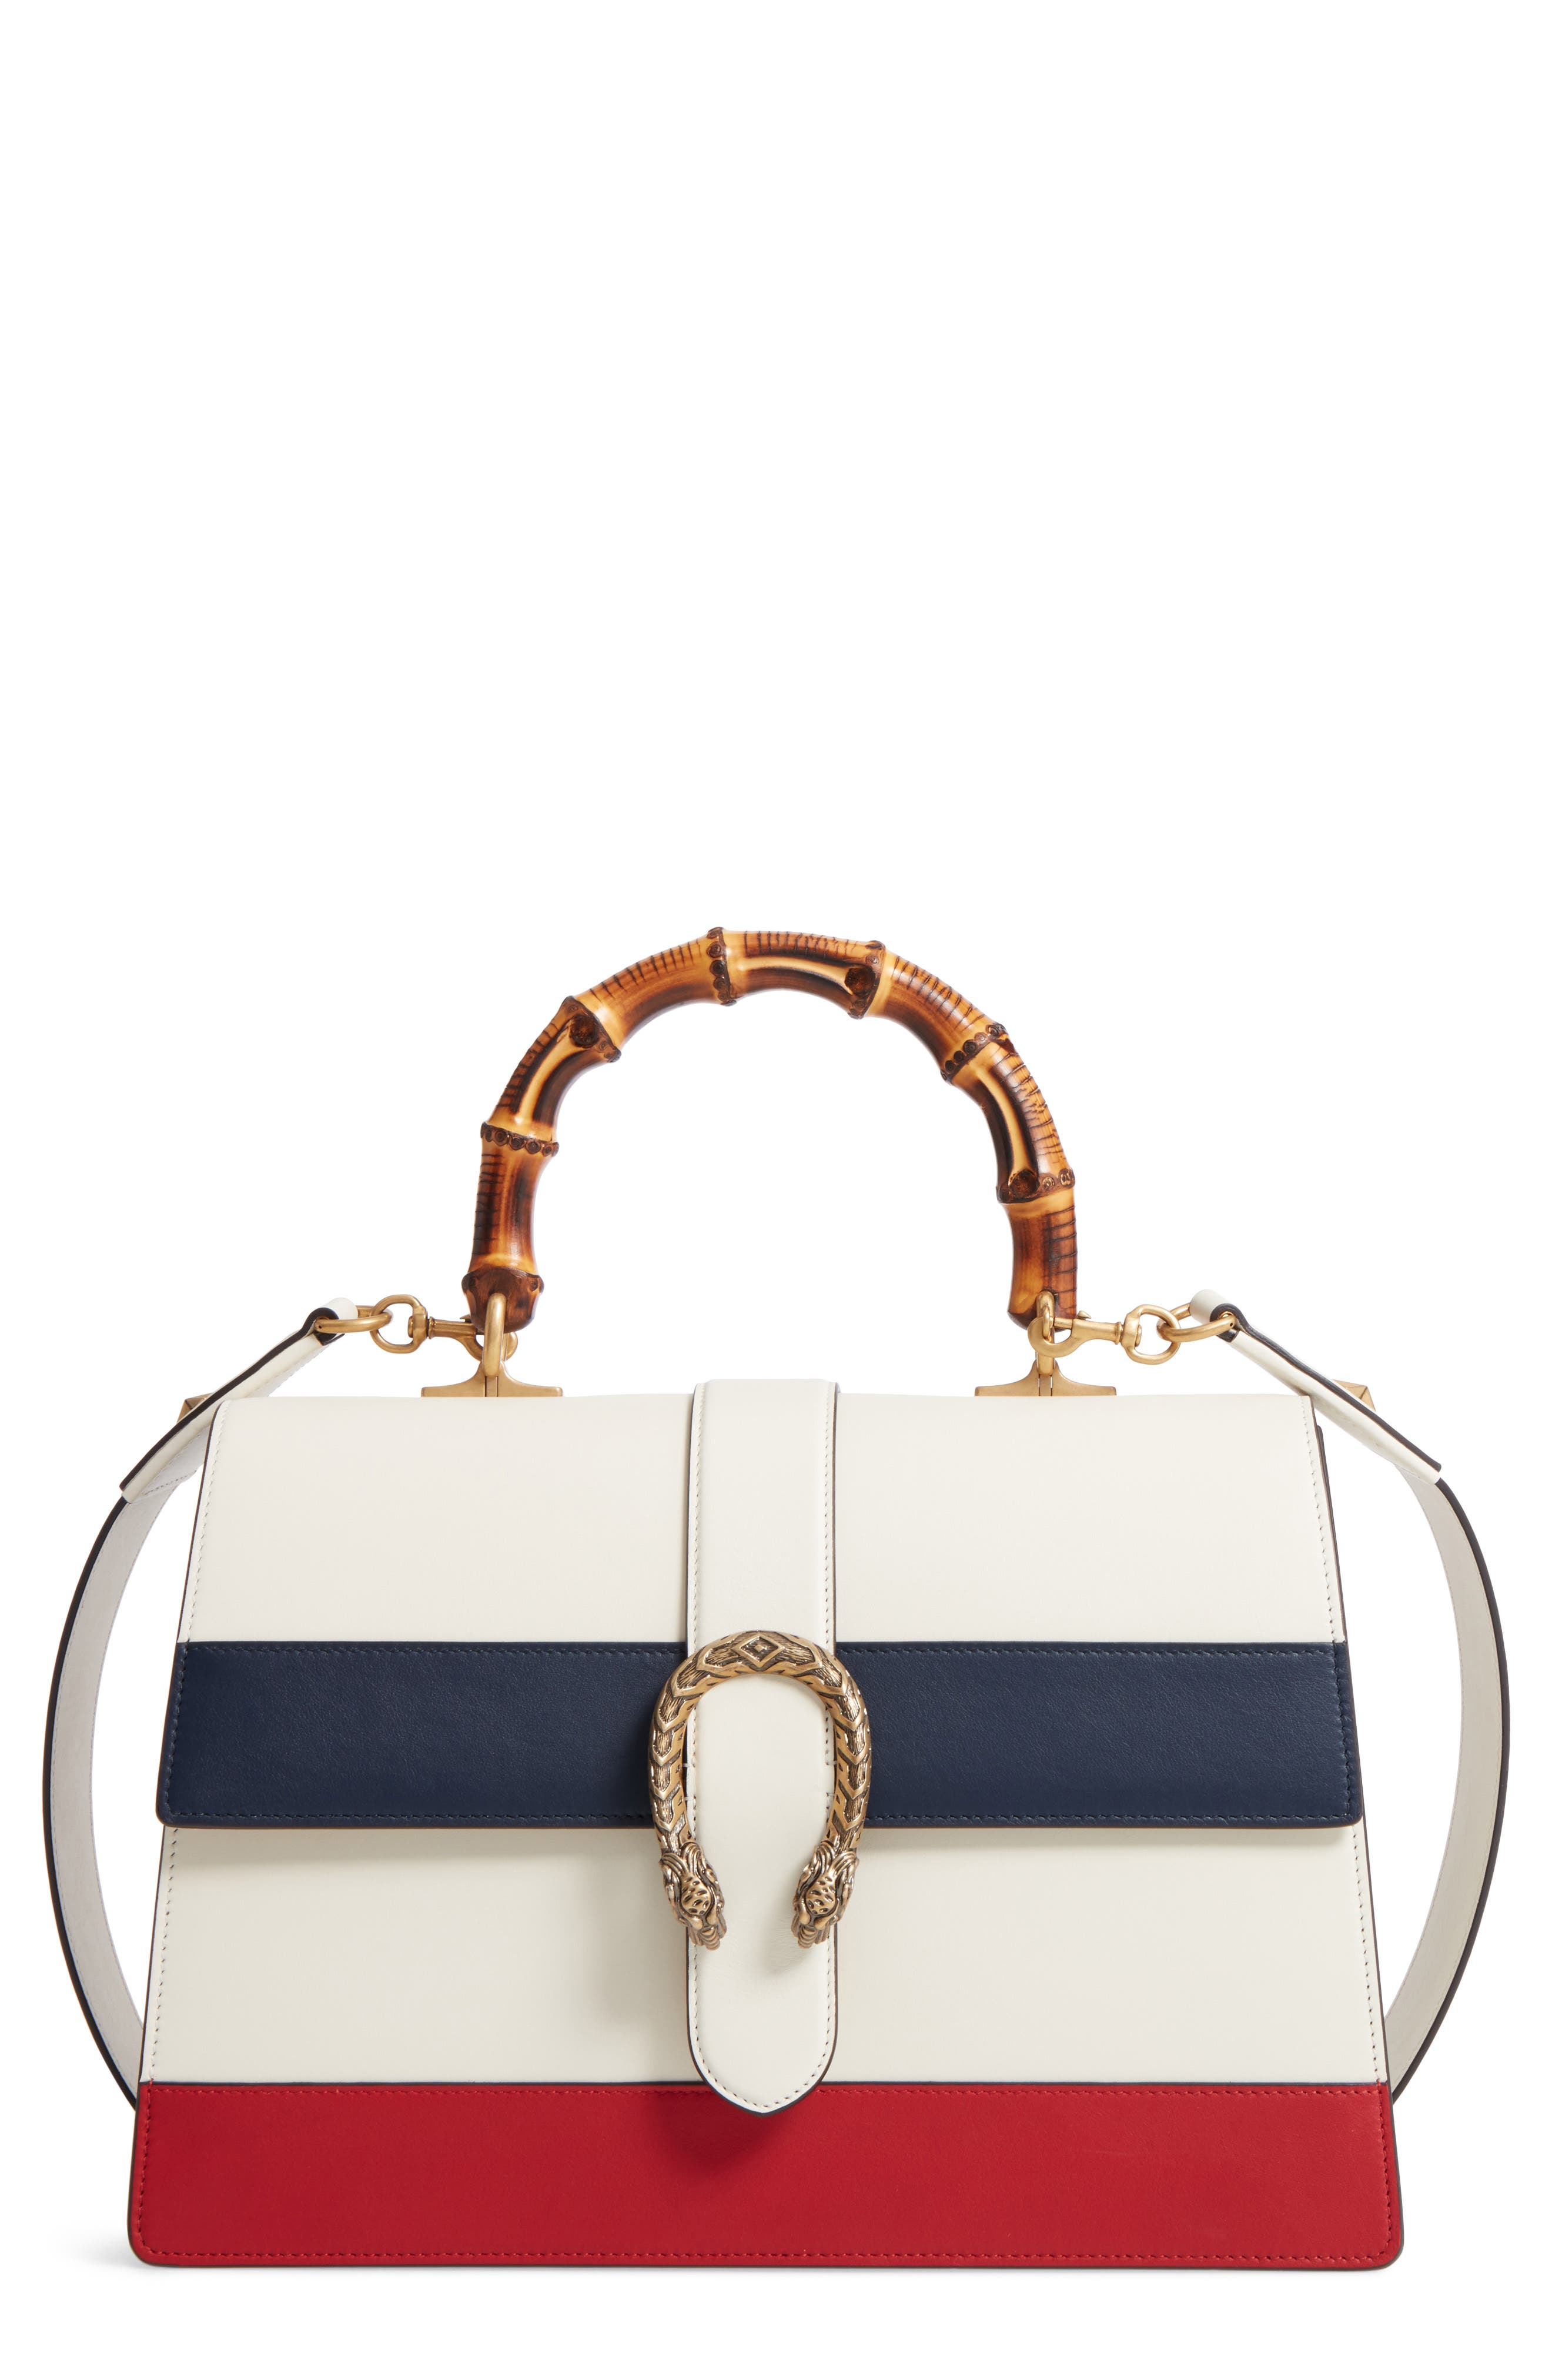 Large Dionysus Top Handle Leather Shoulder Bag,                             Main thumbnail 1, color,                             Mystic White/ Blue/ Red